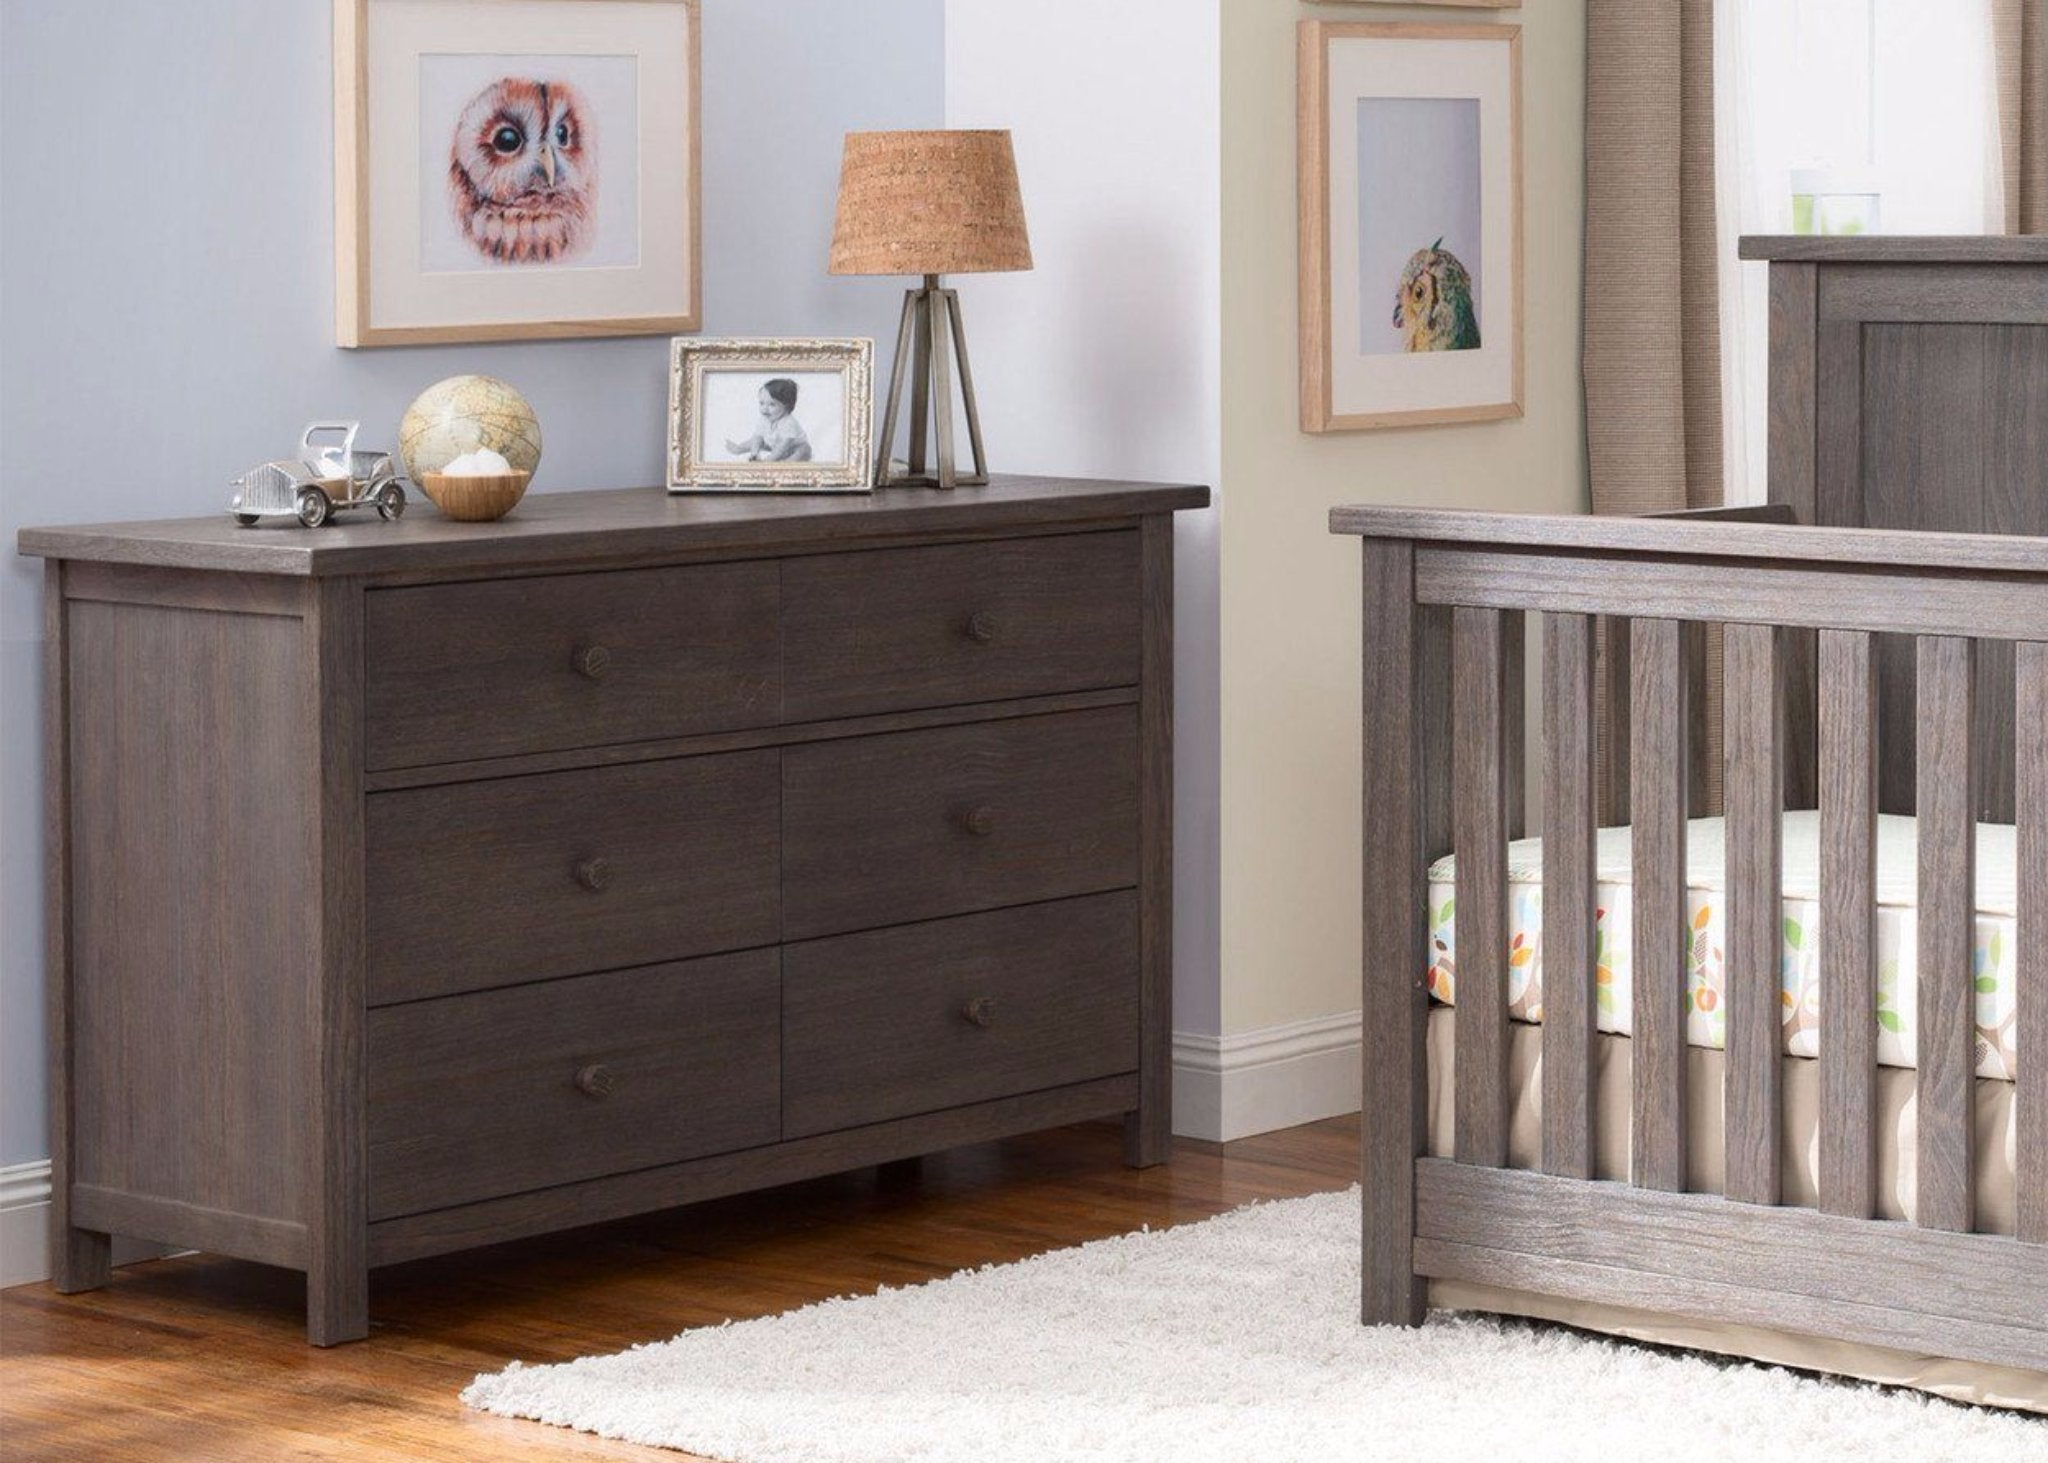 Serta Rustic Grey (084) Northbrook 6 Drawer Dresser, Room View a0a